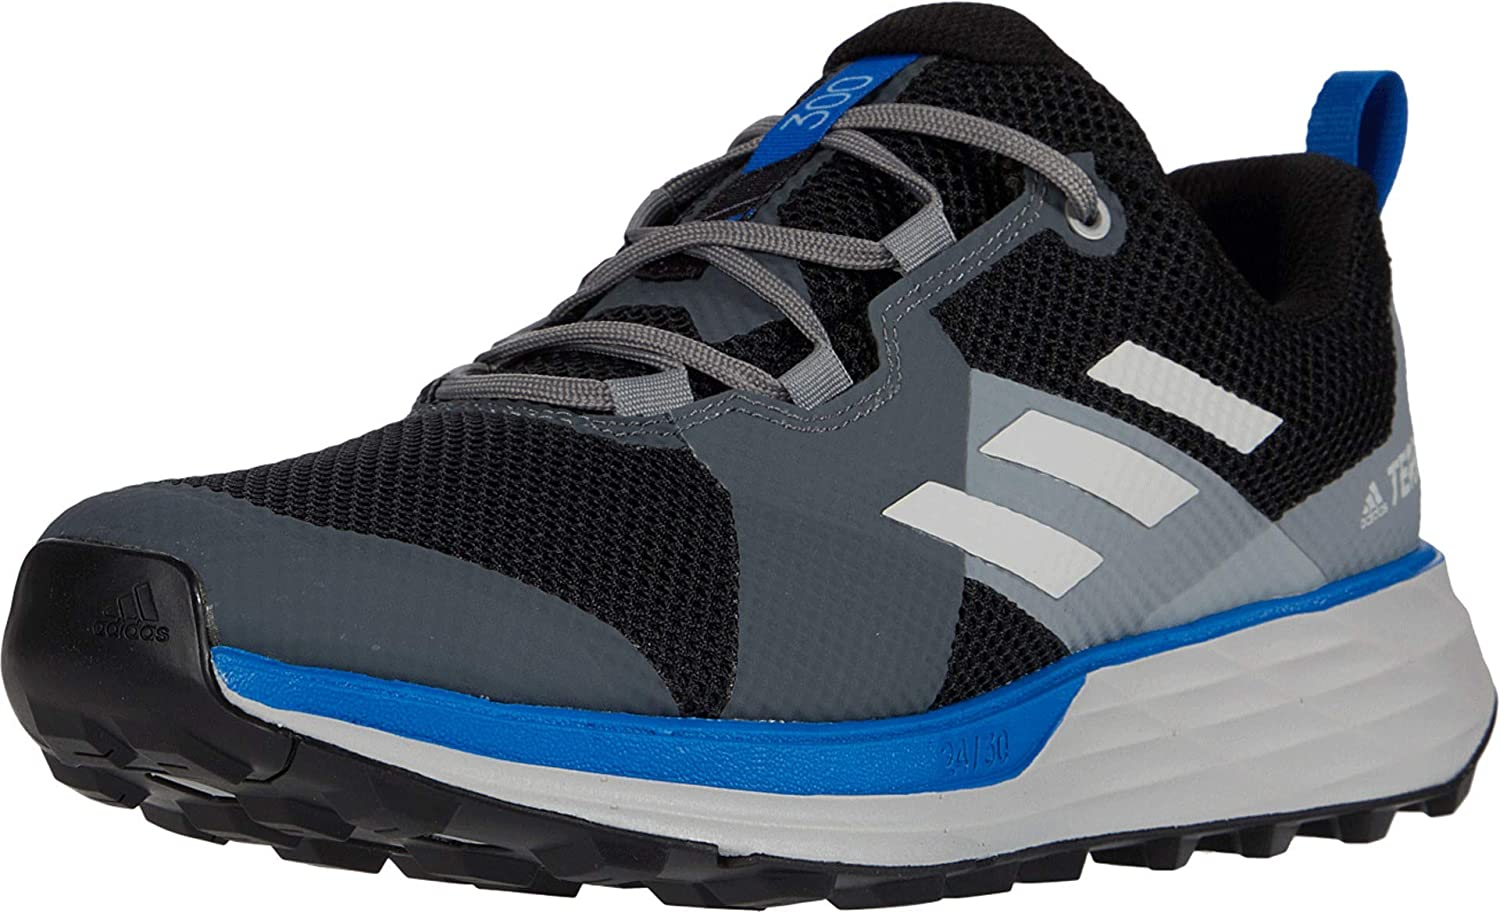 adidas Terrex New Shipping Free Shipping Two Trail Same day shipping Shoes Men's Running